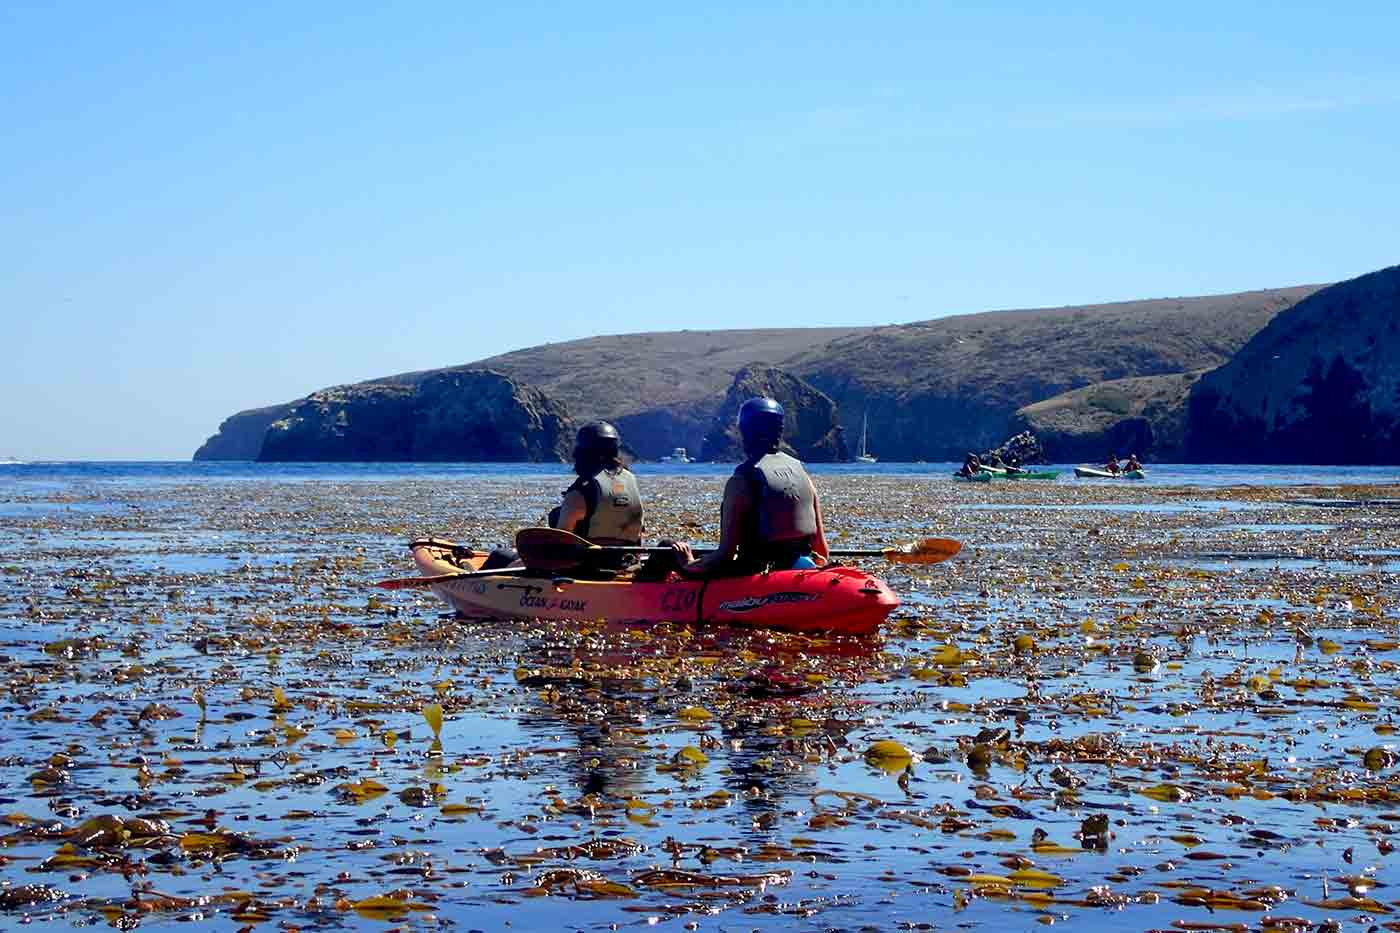 kayaking over a giant kelp forest on a sunny afternoon at Santa Cruz Island